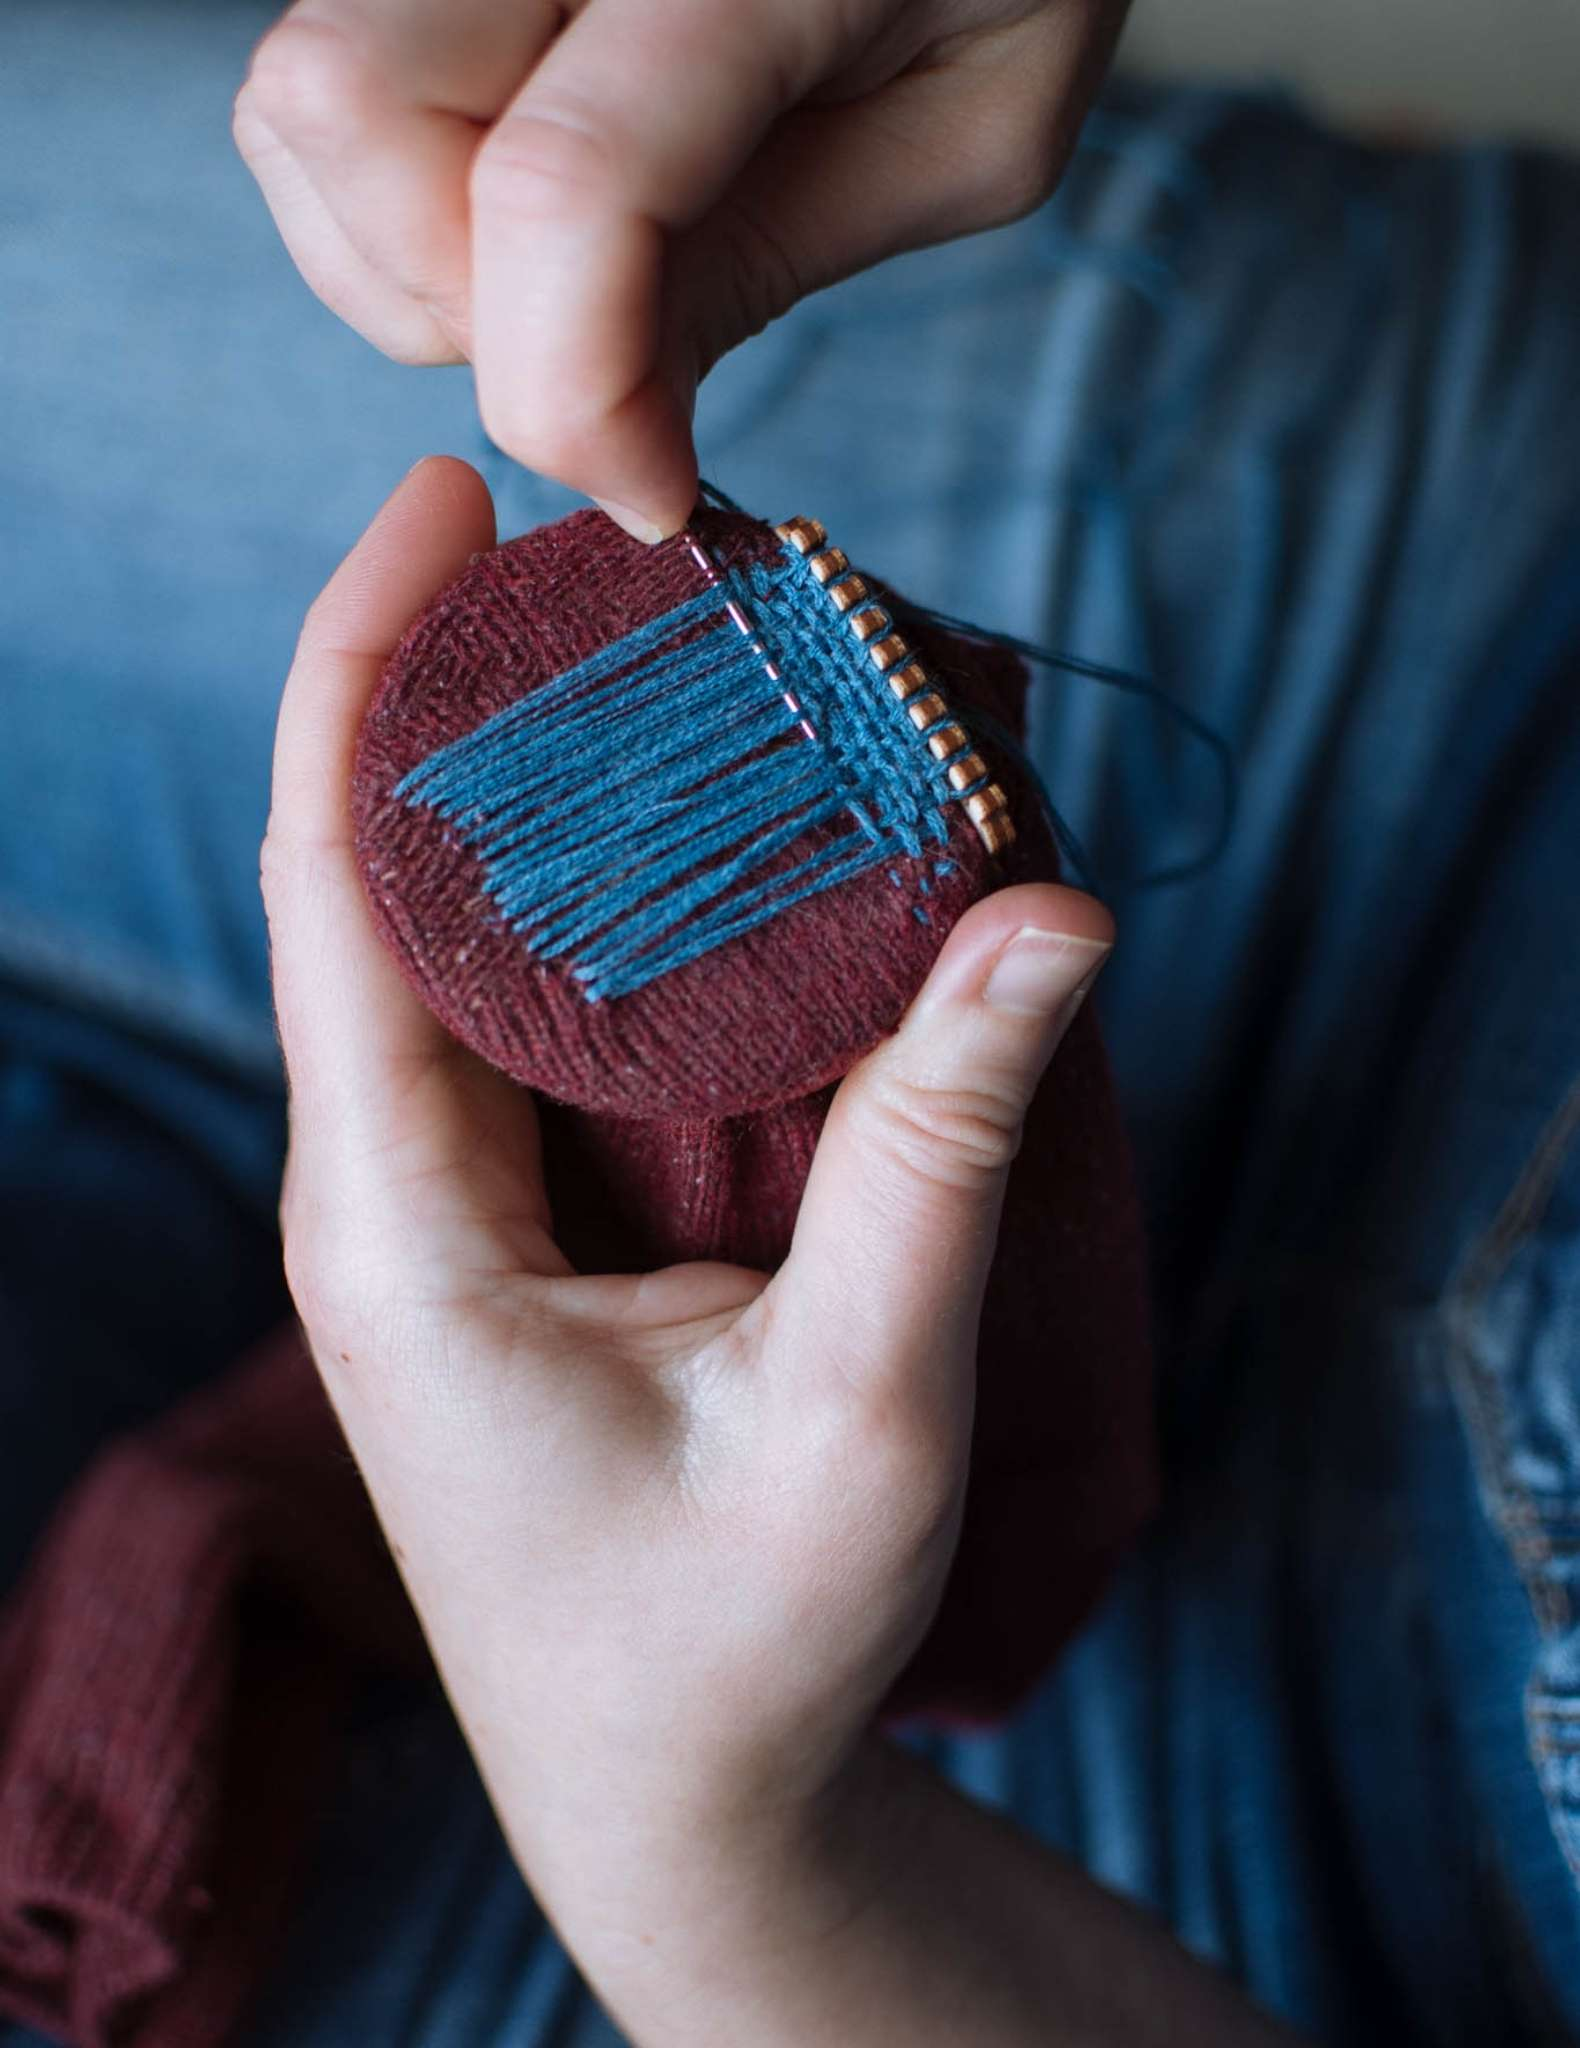 A model holds a burgundy sock while darning it with teal blue thread, using a wooden darning loom.